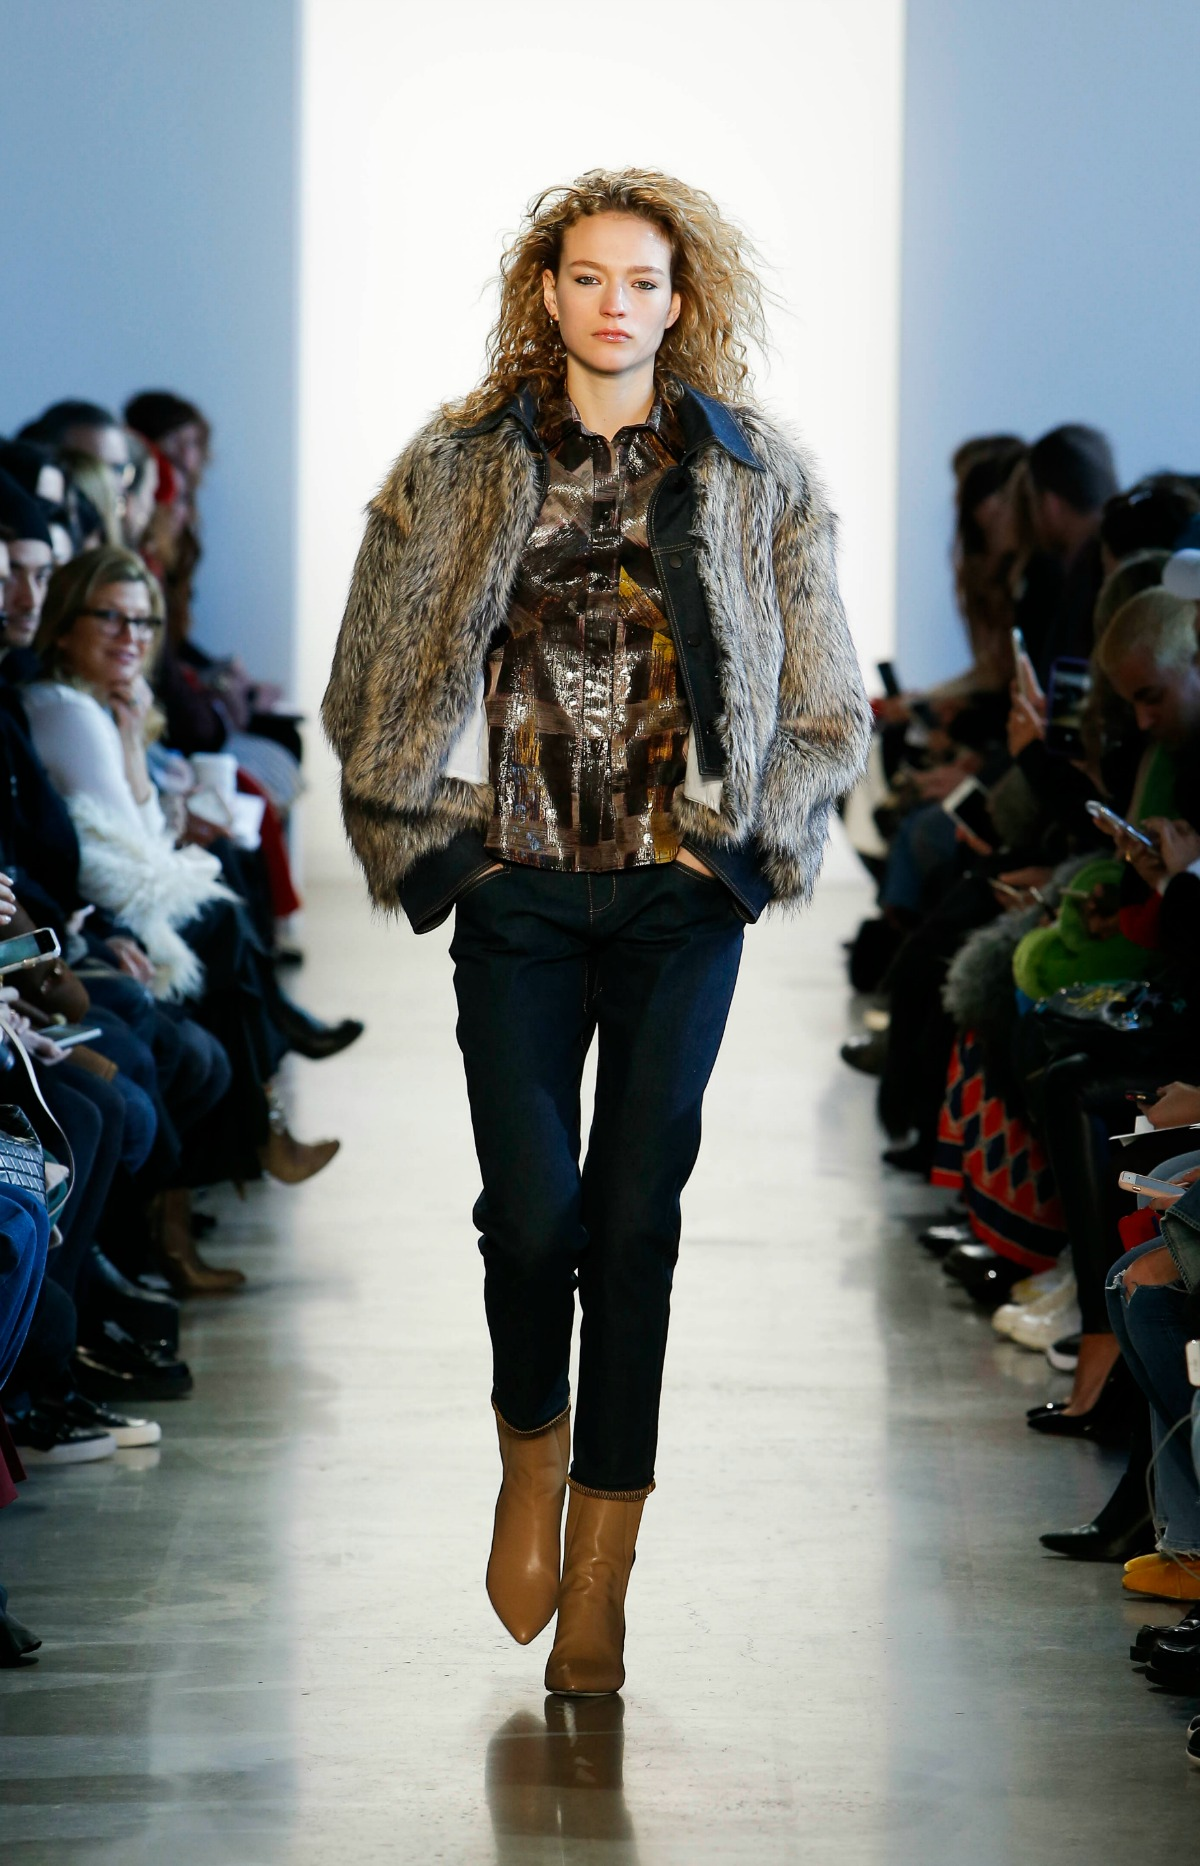 COLOVOS Fall 2018 Runway at NYFW I Faux Fur Bomber Jacket #NYFW #WinterFashion